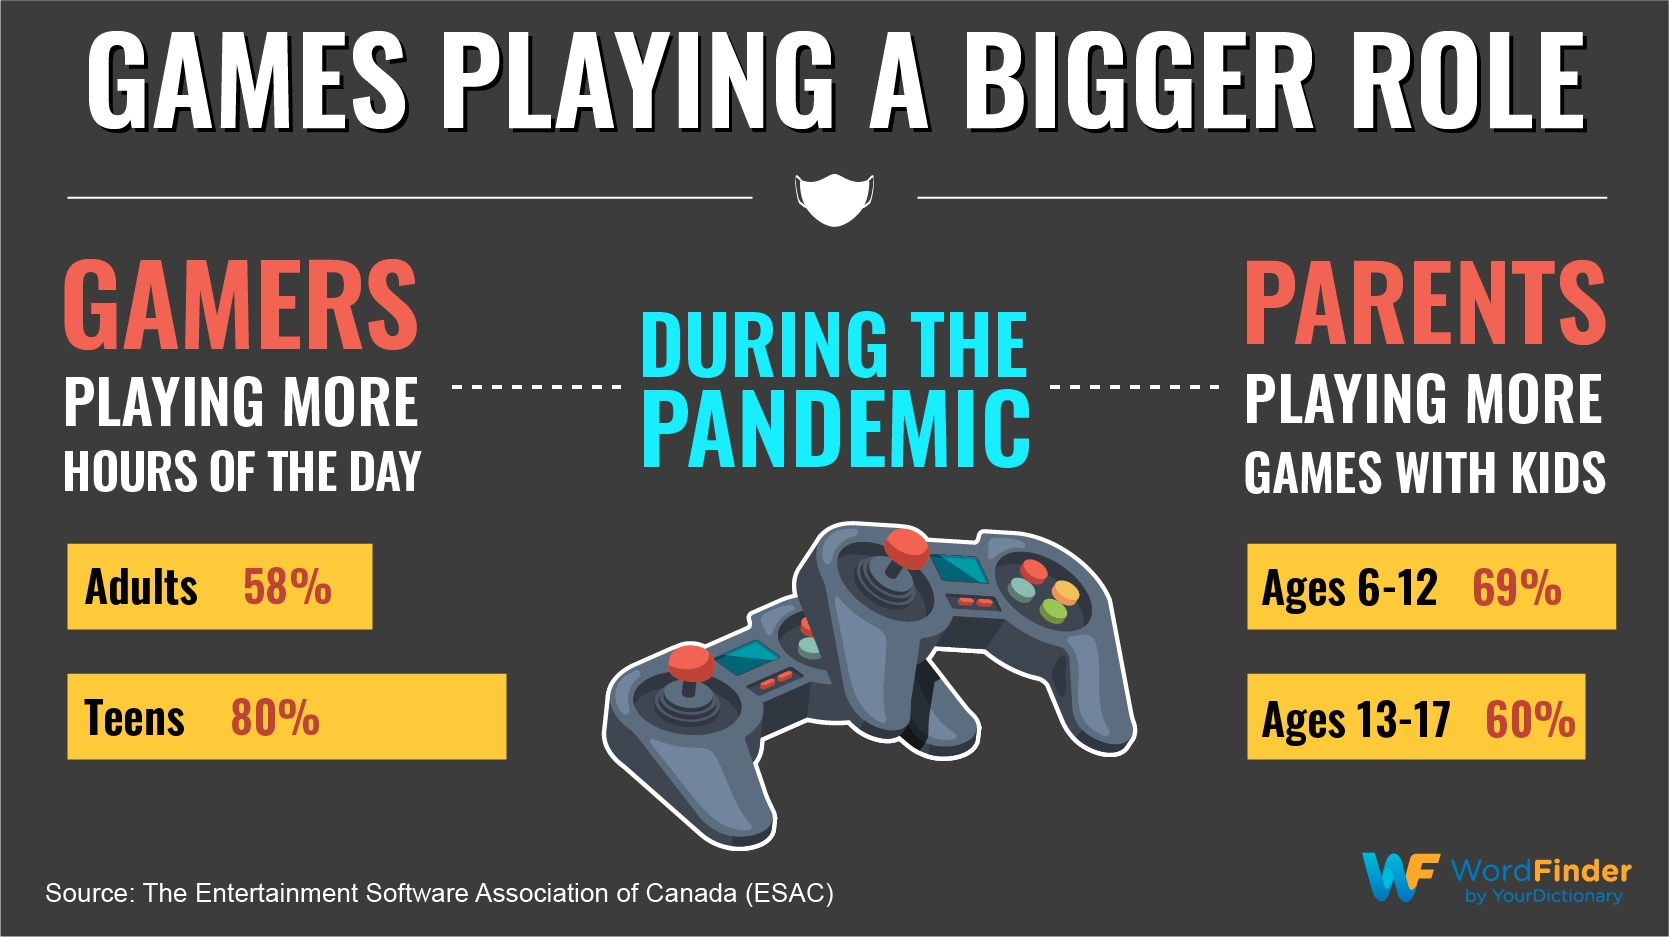 games playing a bigger role during pandemic infographic